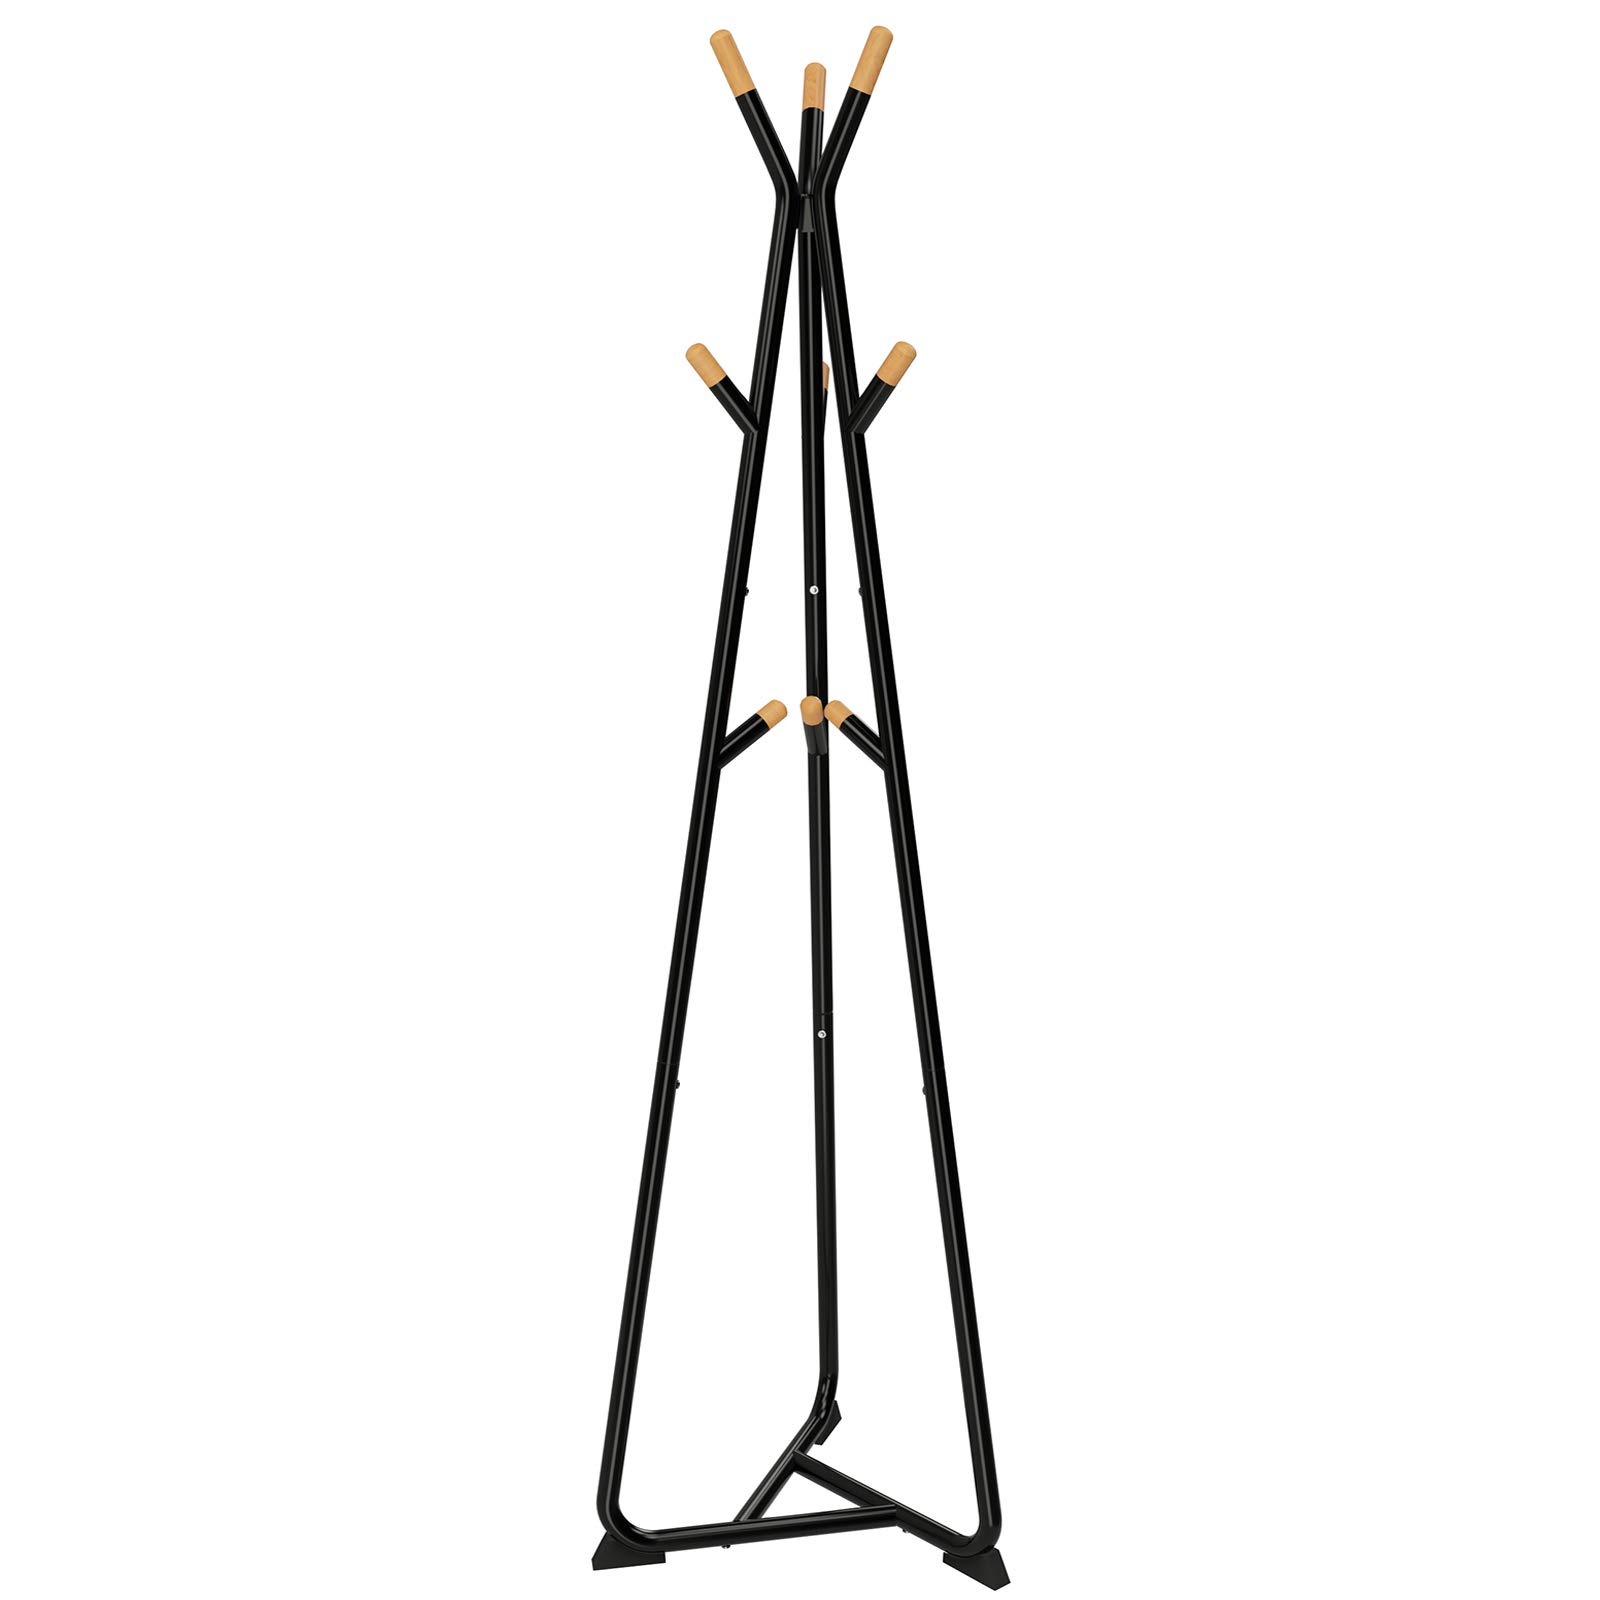 SONGMICS Coat Rack Stand, Coat Tree, Hall Tree Free Standing, with 9 Beech Wood Hooks, for Clothes, Hat, Bag, Black, Natural Grain URCR15BY by SONGMICS